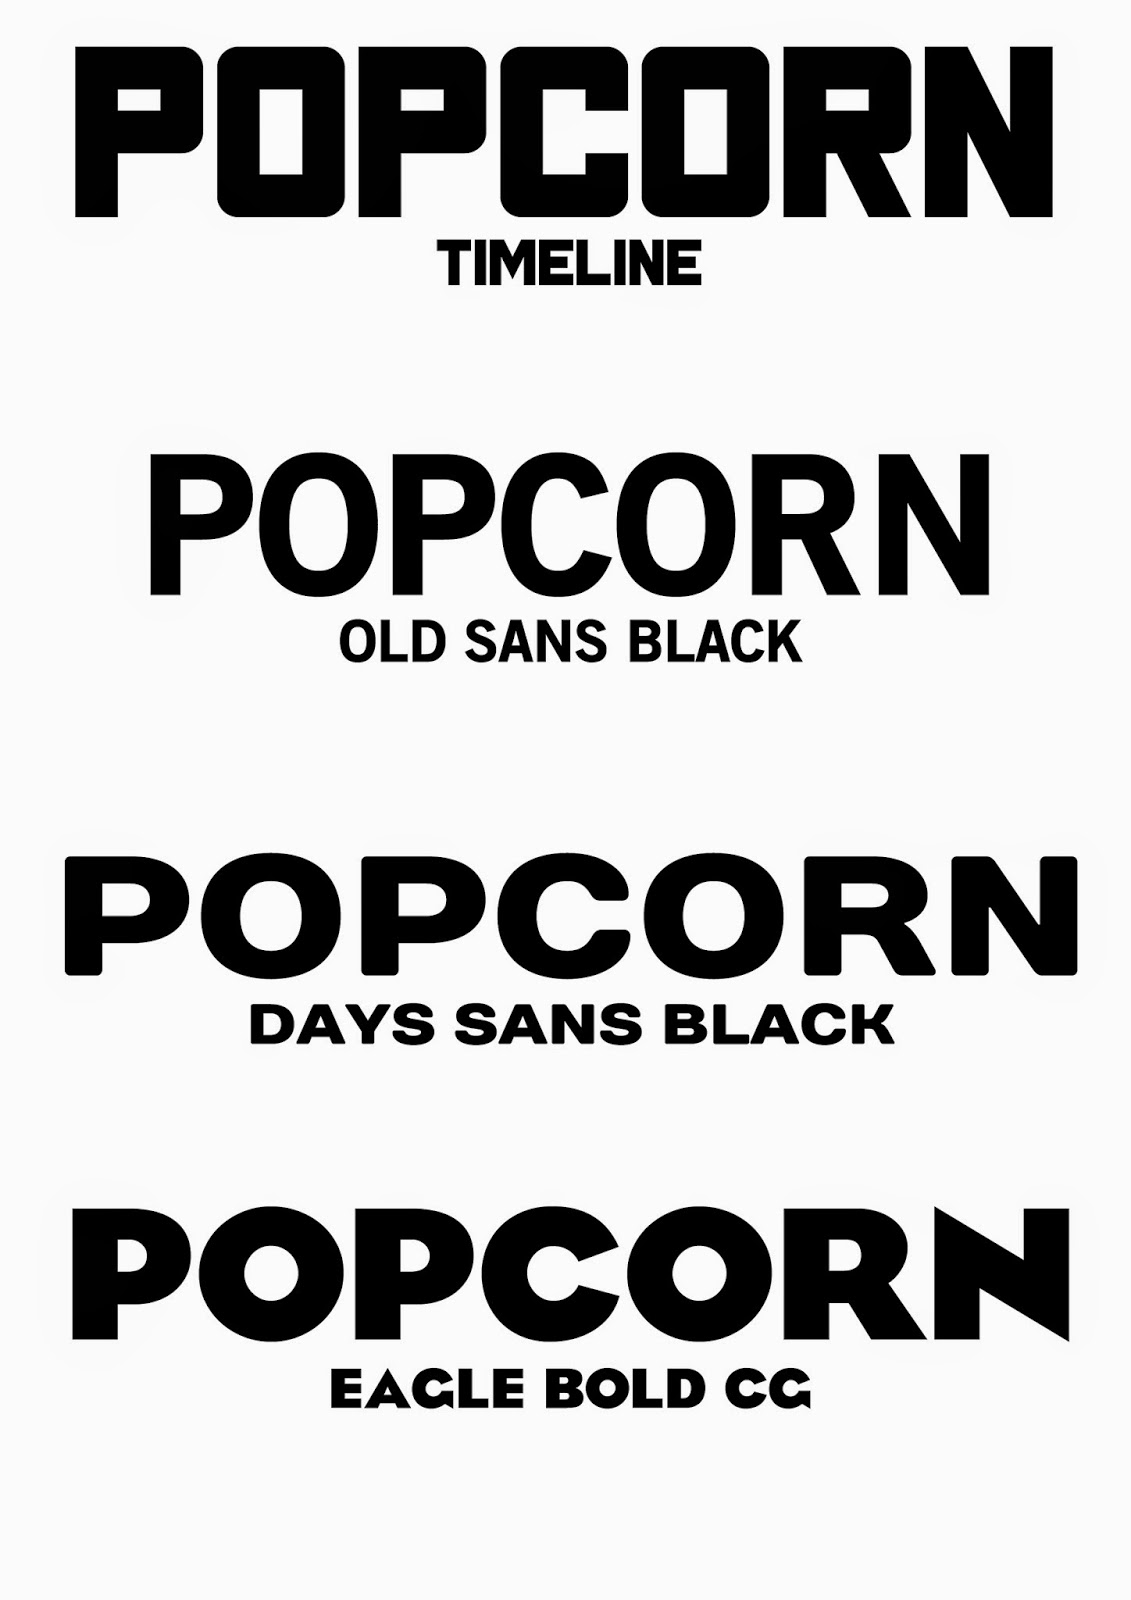 total film i knew i wanted a font that was thick bold and not too round to represent the type of magazine it is and the types of films it talks about